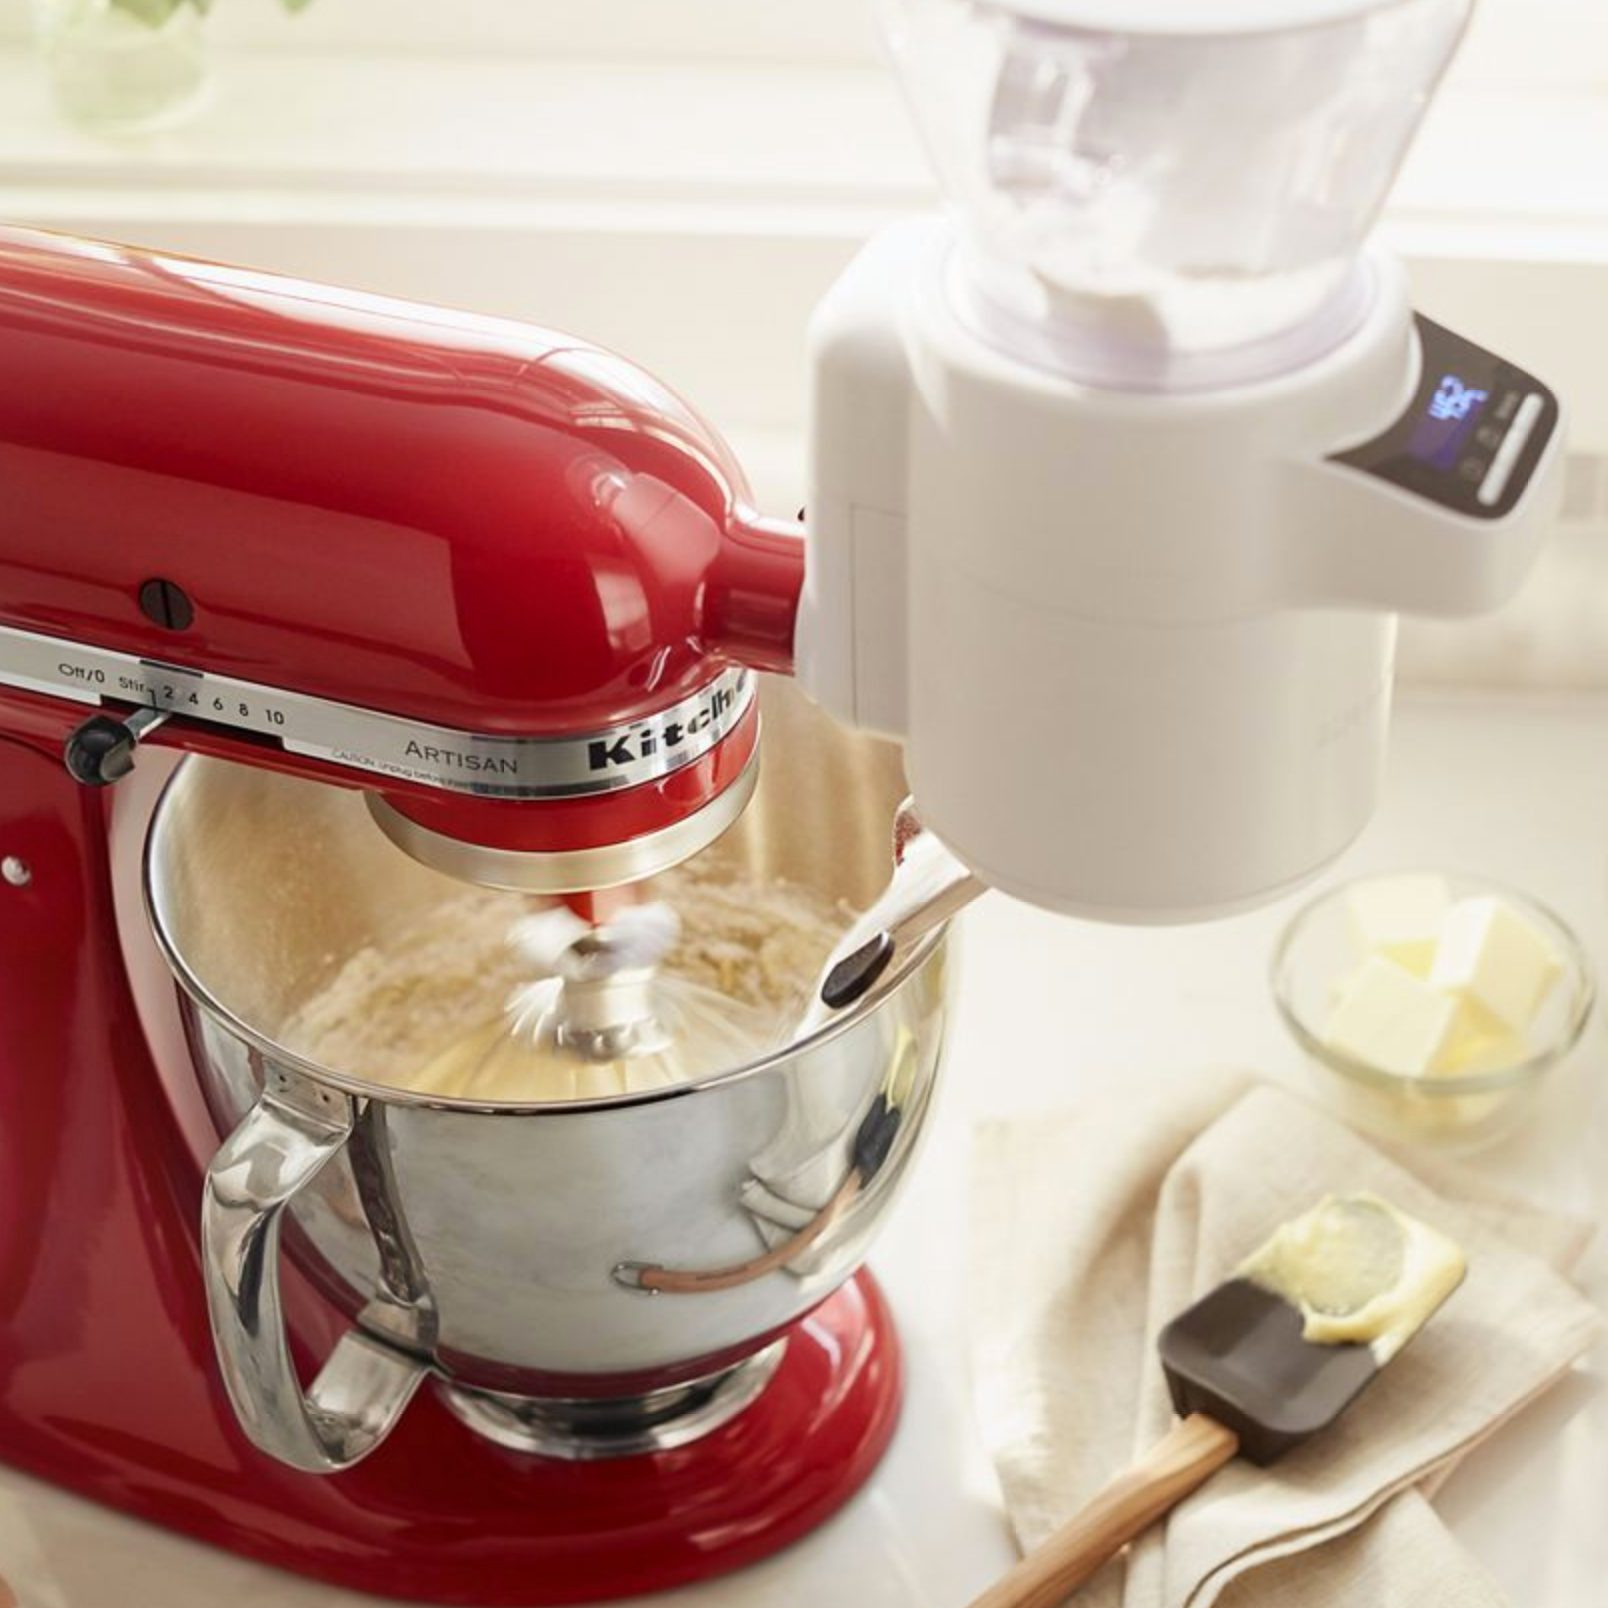 The 10 Best Kitchenaid Attachments You Can Buy For Your Stand Mixer